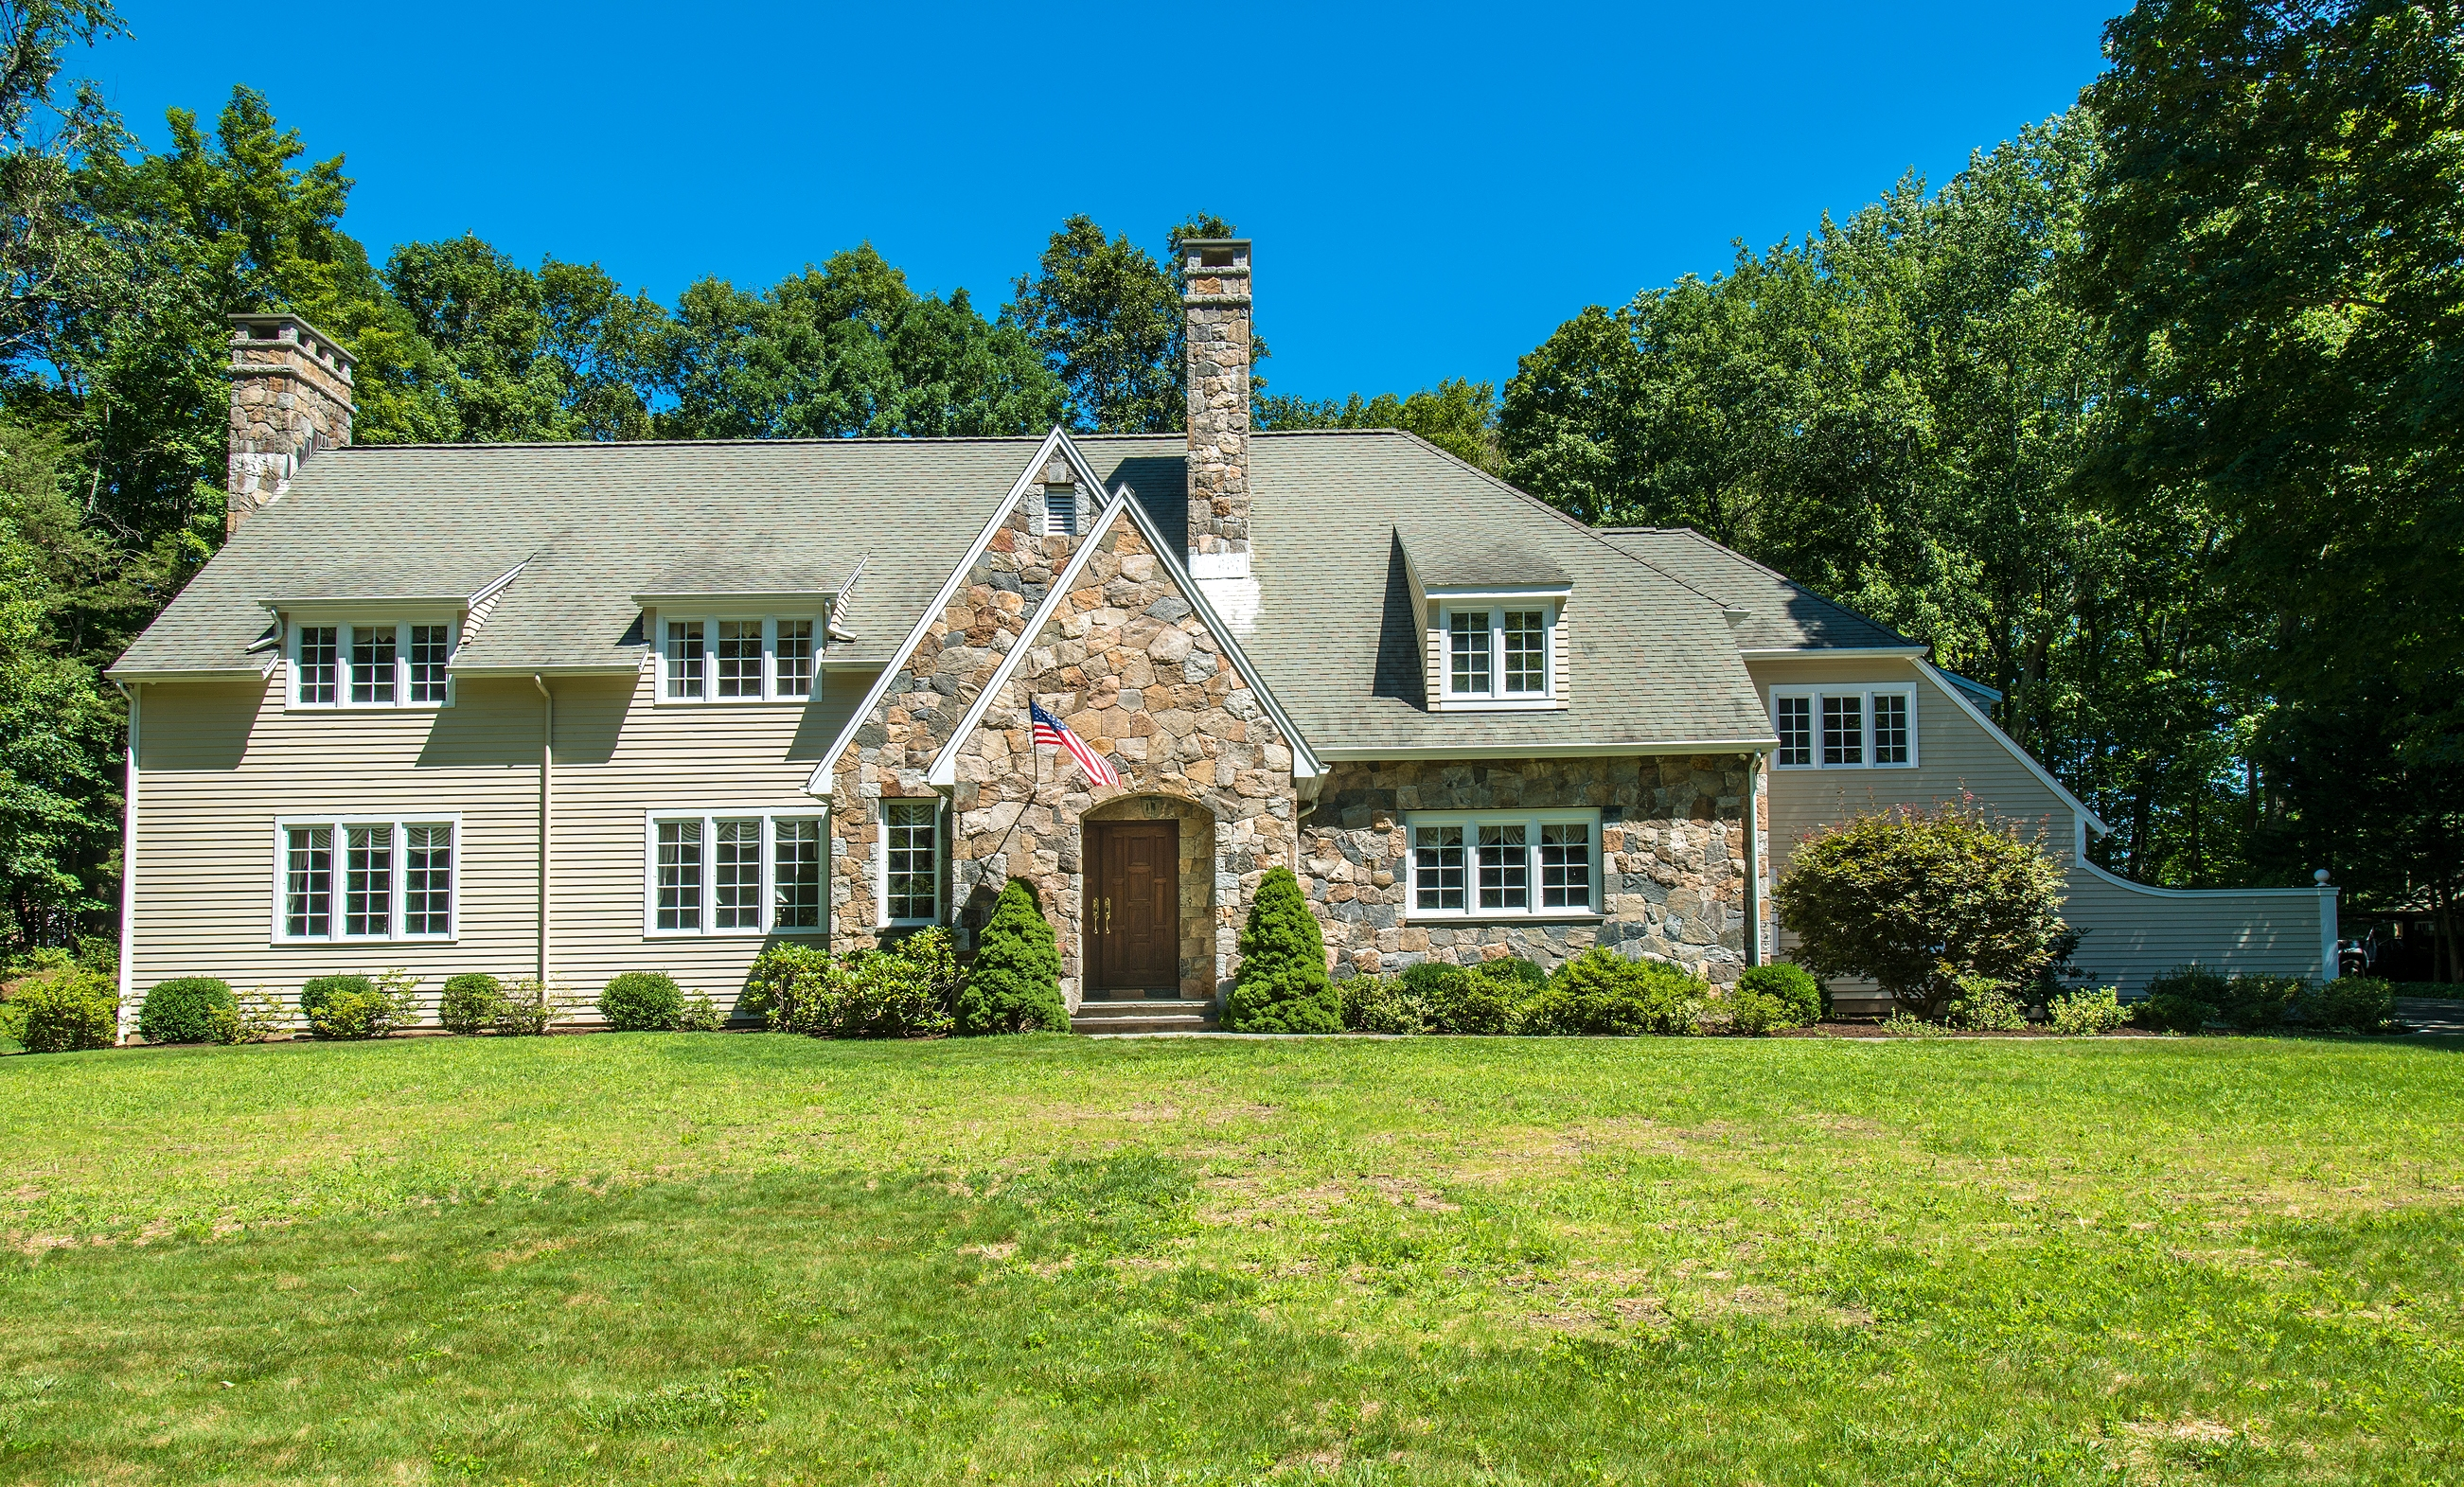 Single Family Home for Sale at 93 Sleepy Hollow Road New Canaan, Connecticut, 06840 United States